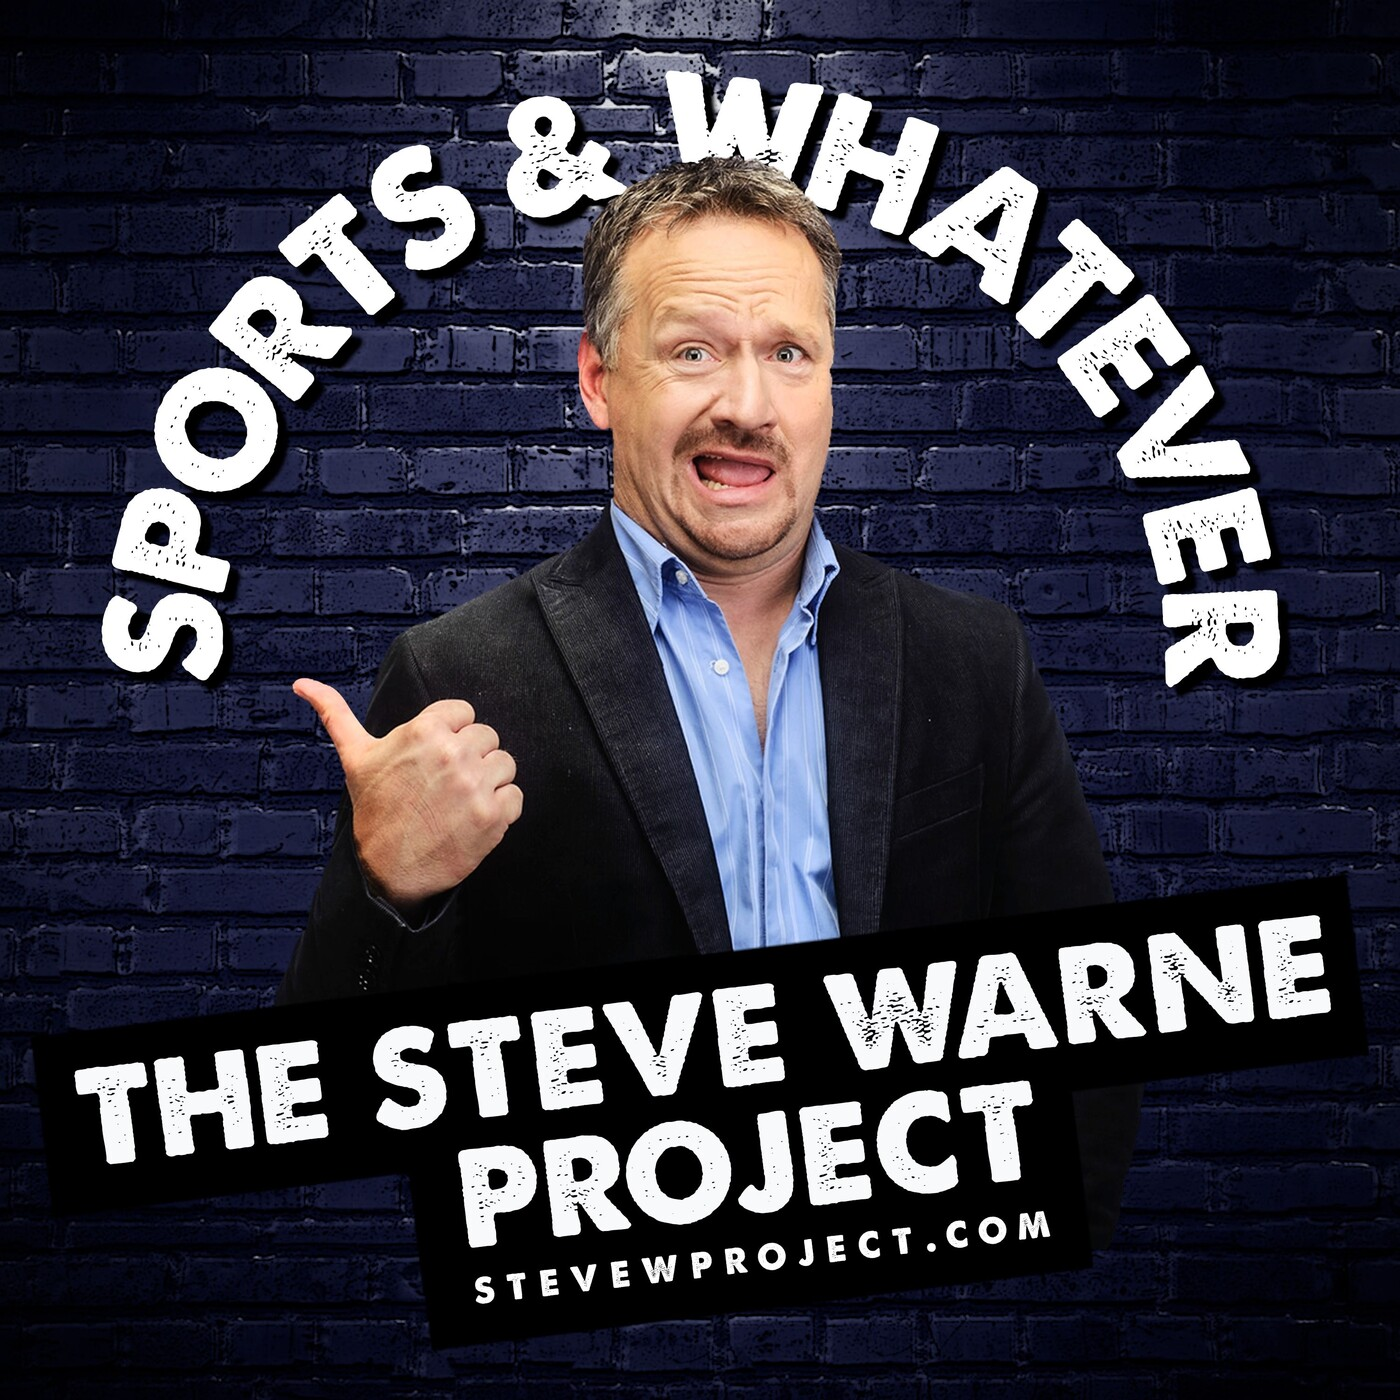 383: The COVID Adds 10 pounds; Doc Emrick Calls it Quits, We Discuss Great Sports Announcers